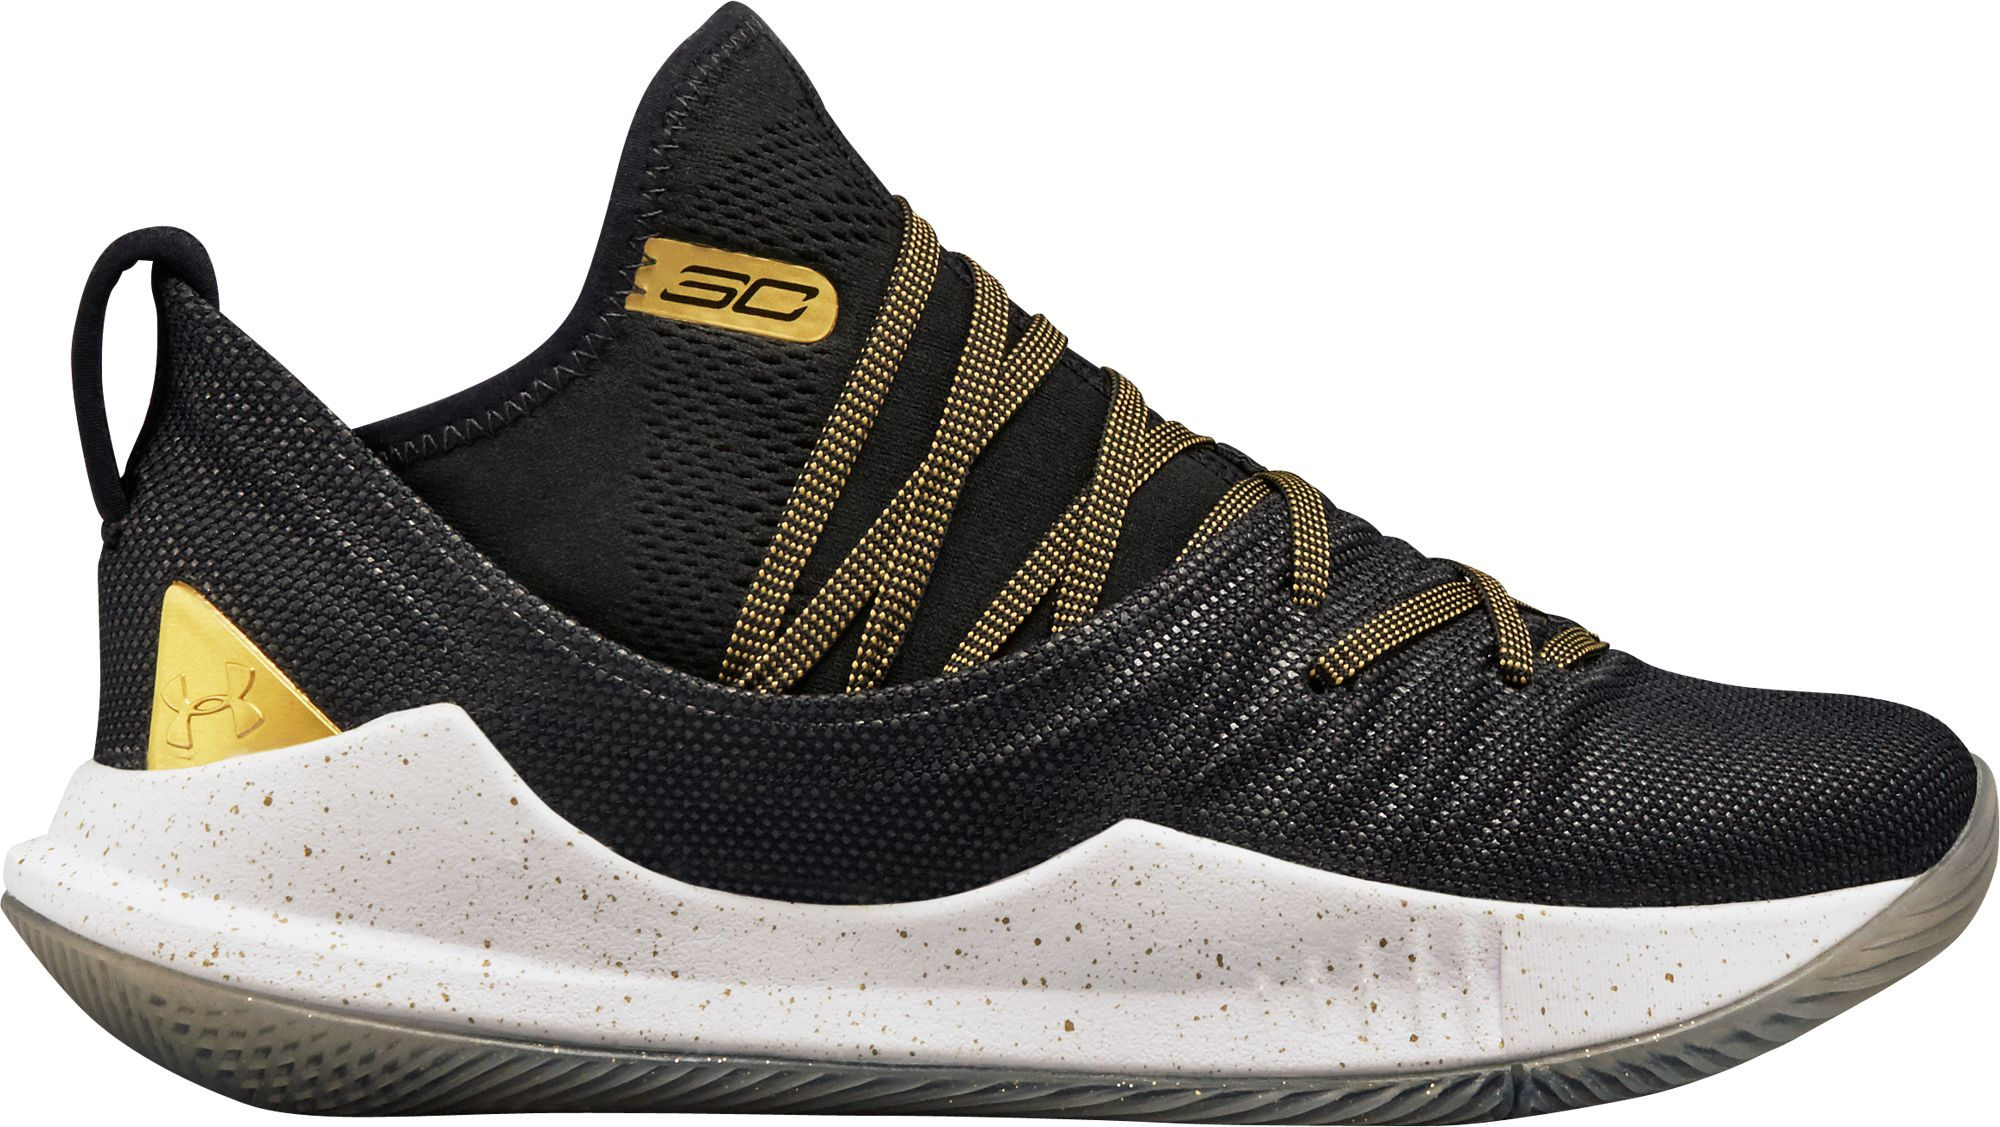 313b70150053 Under Armour Kids  Grade School Curry 5 Basketball Shoes